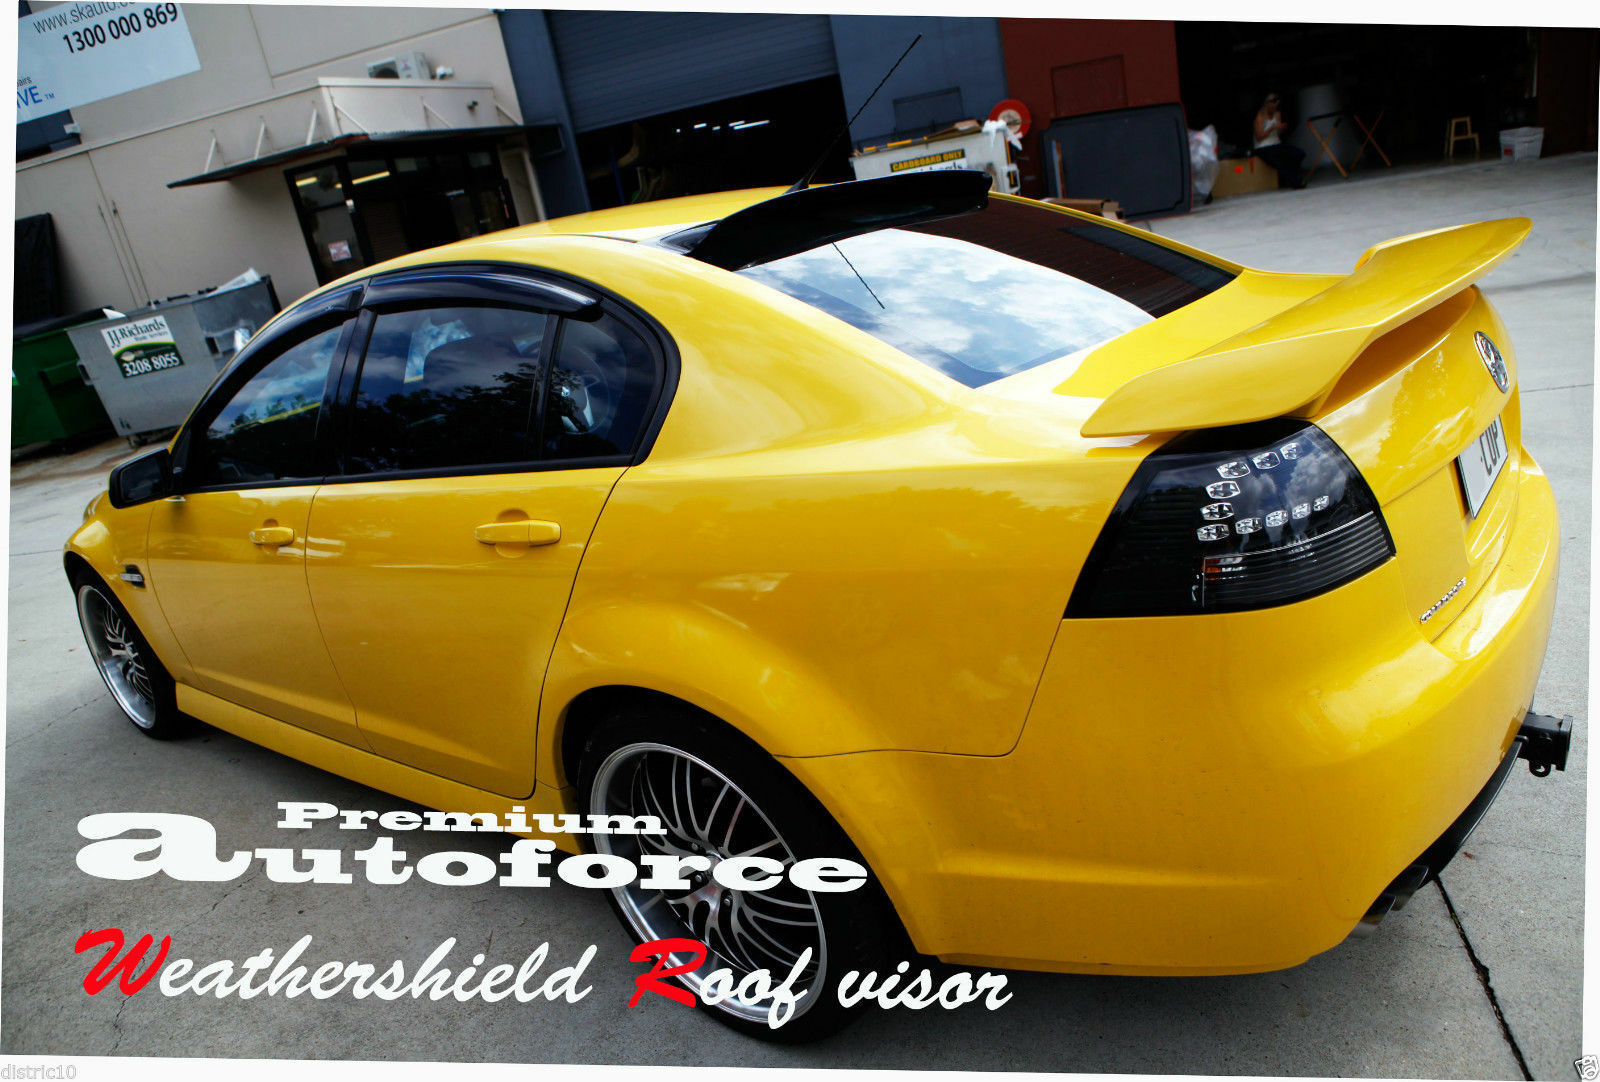 distric10 ~Auto Force Weathershield